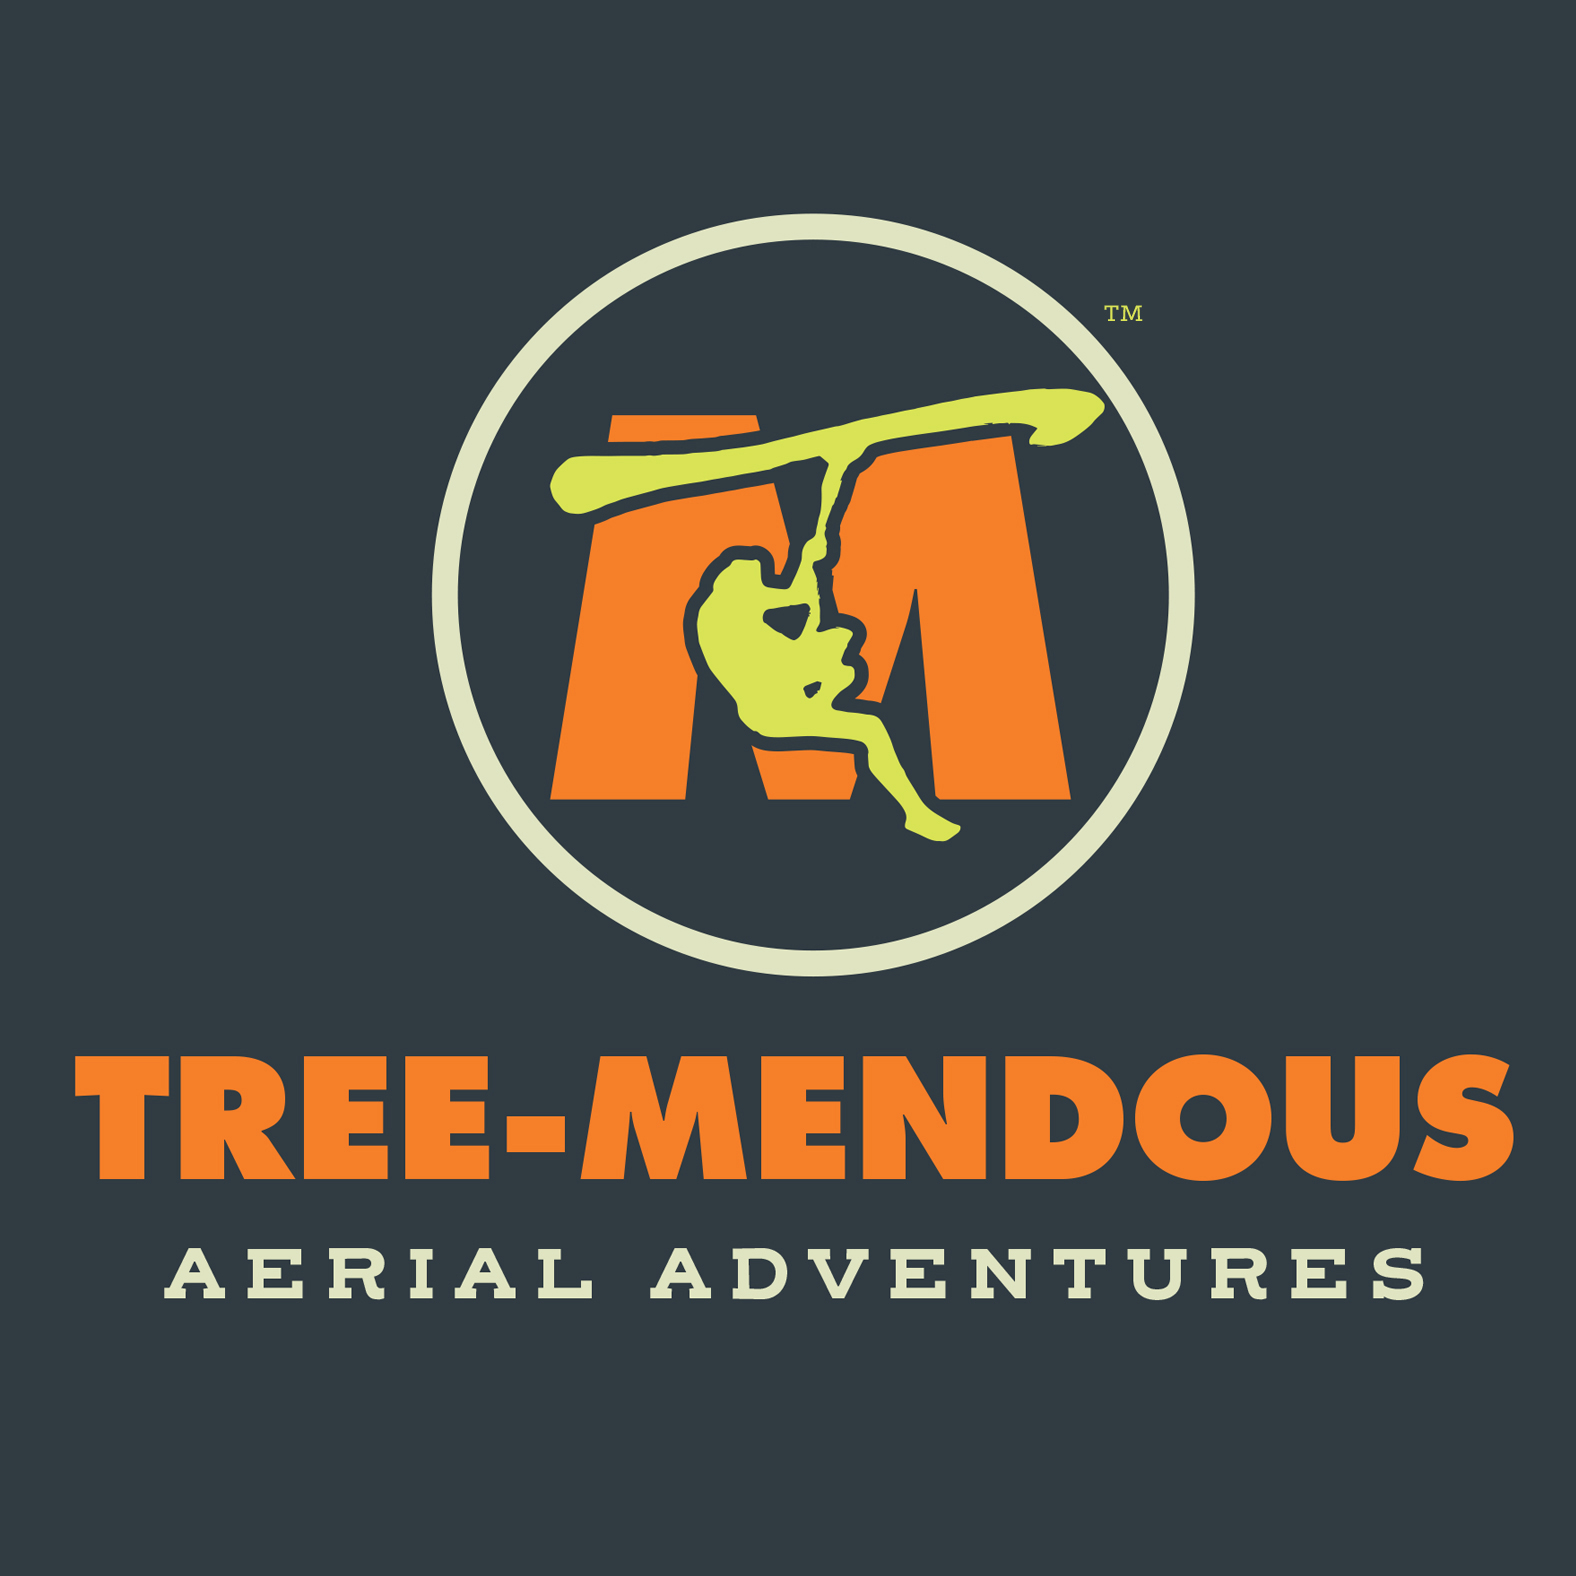 Logo for Tree-Mendous Aerial Adventures